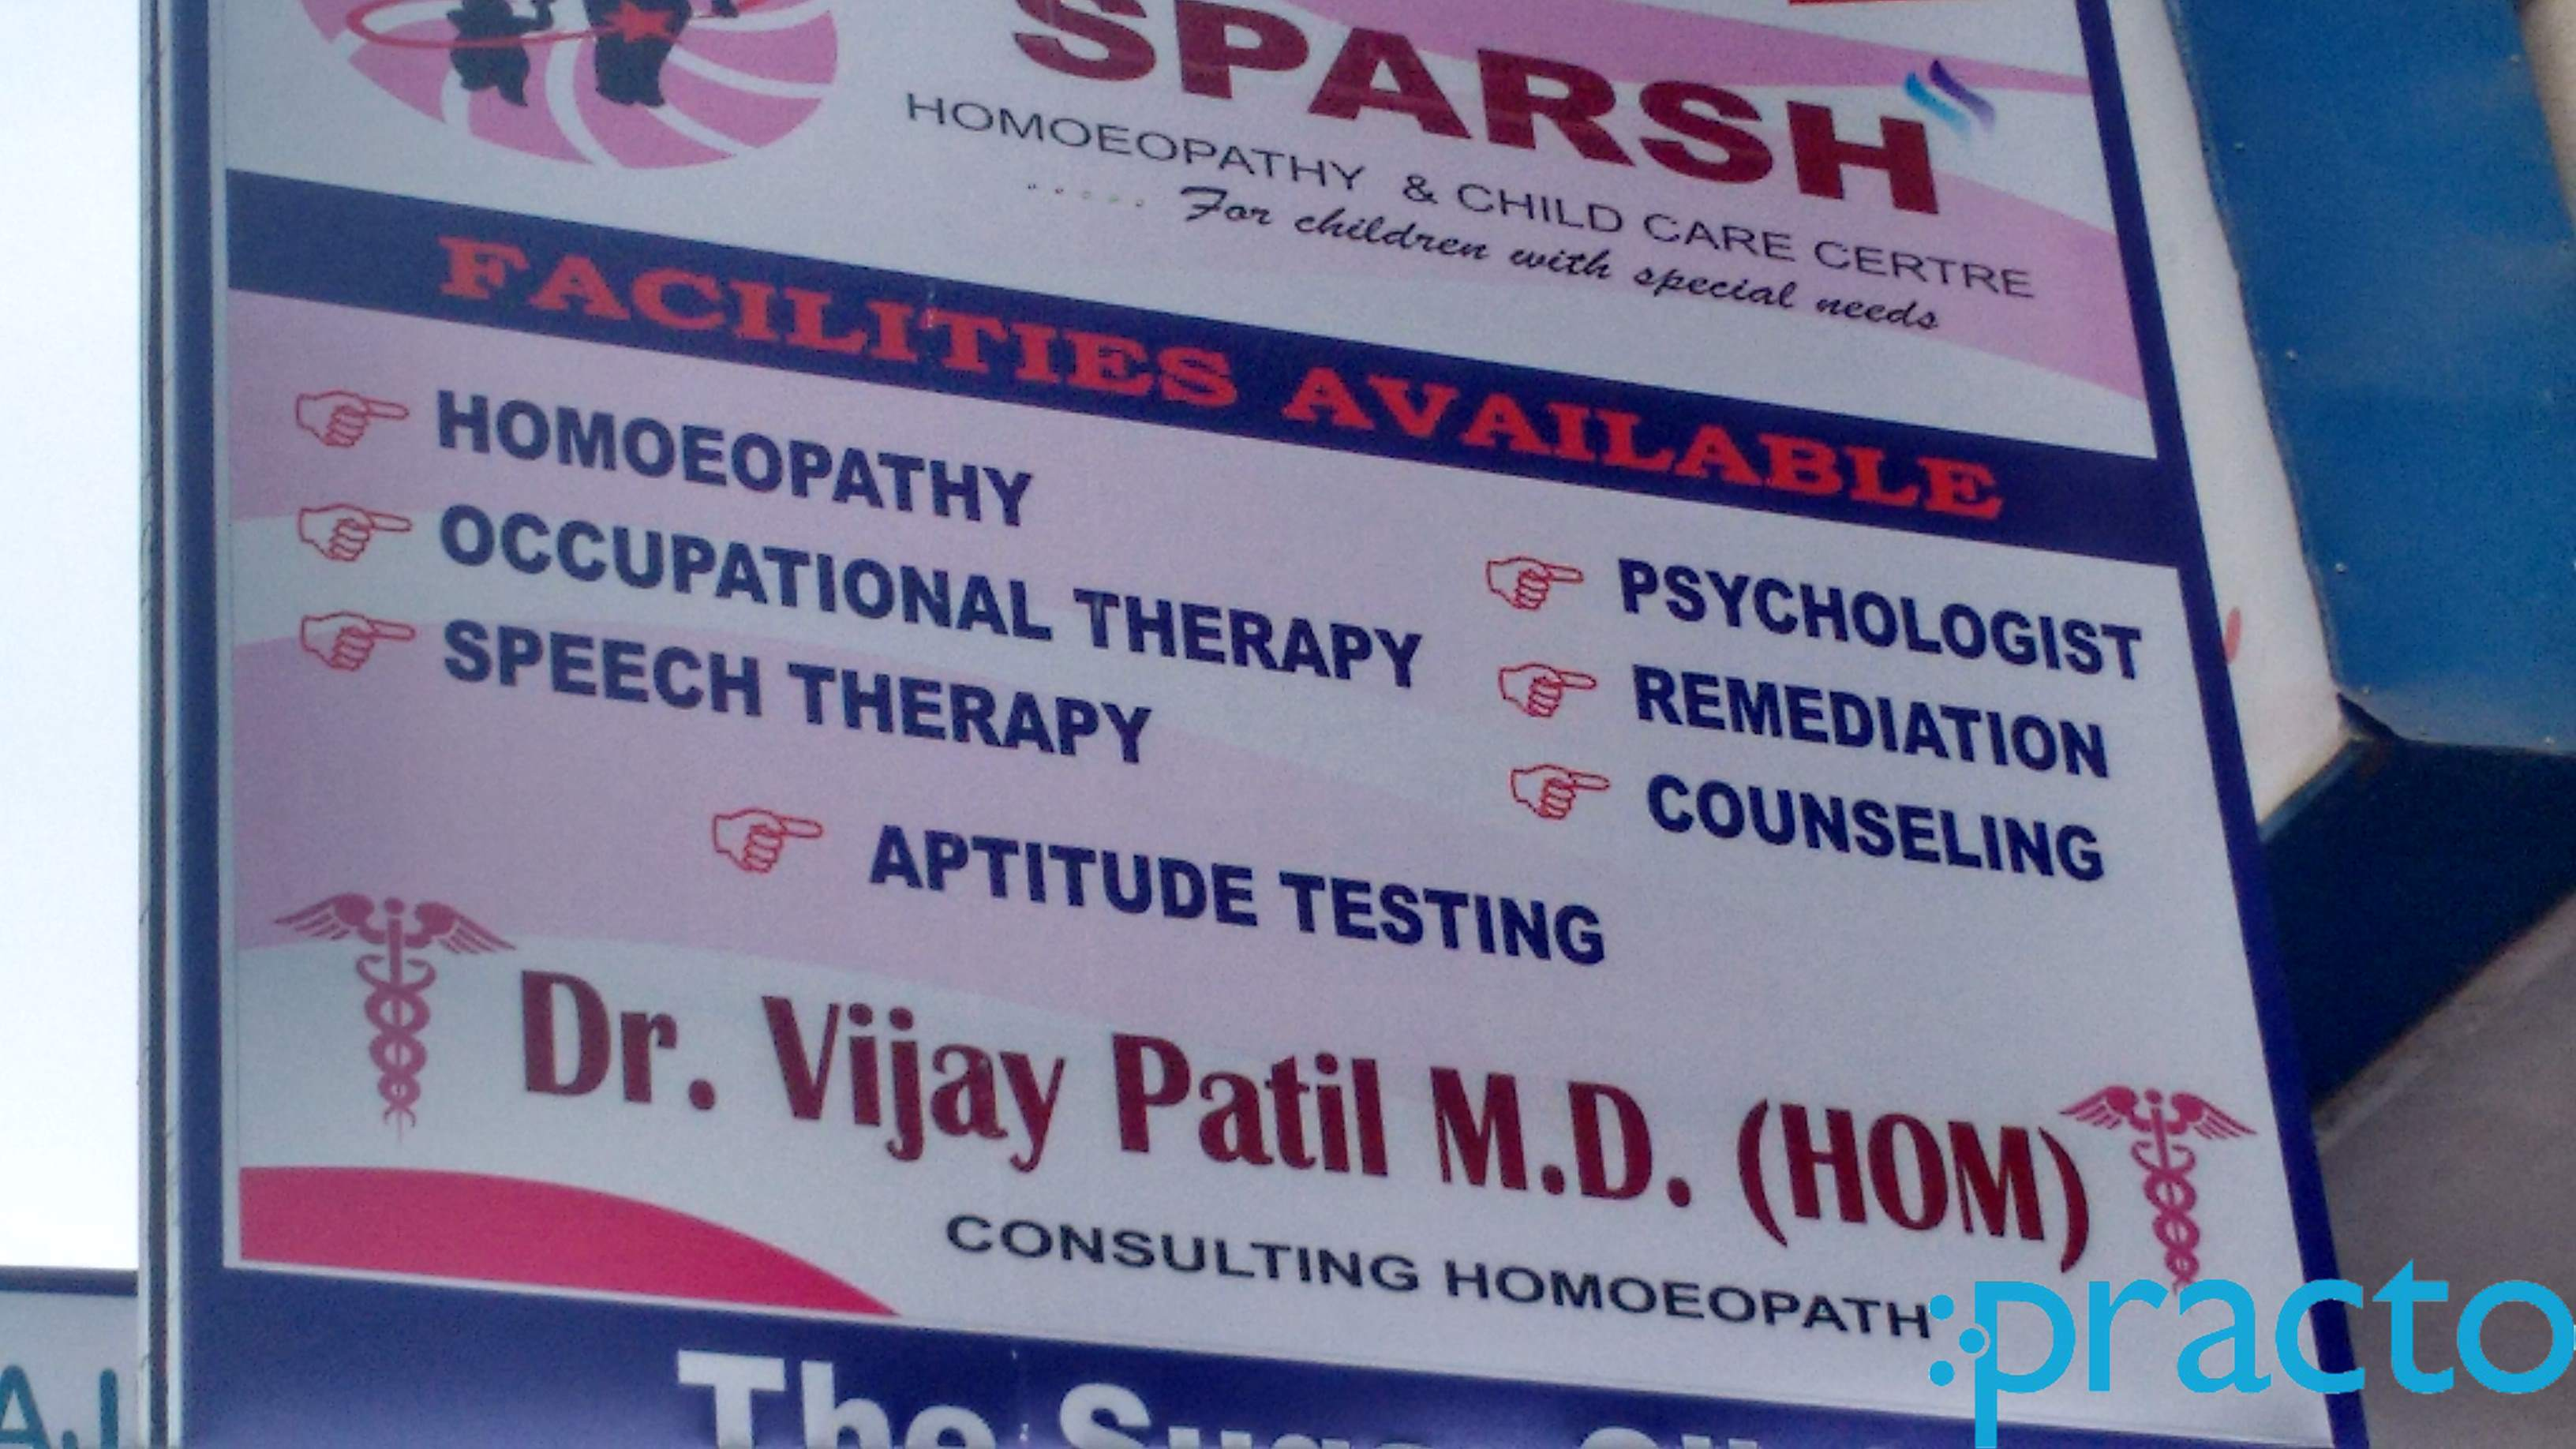 sparsh homeopathic and child care centre multi speciality clinic sparsh homeopathic and child care centre multi speciality clinic in kopar khairne navi mumbai book appointment view fees feedbacks practo